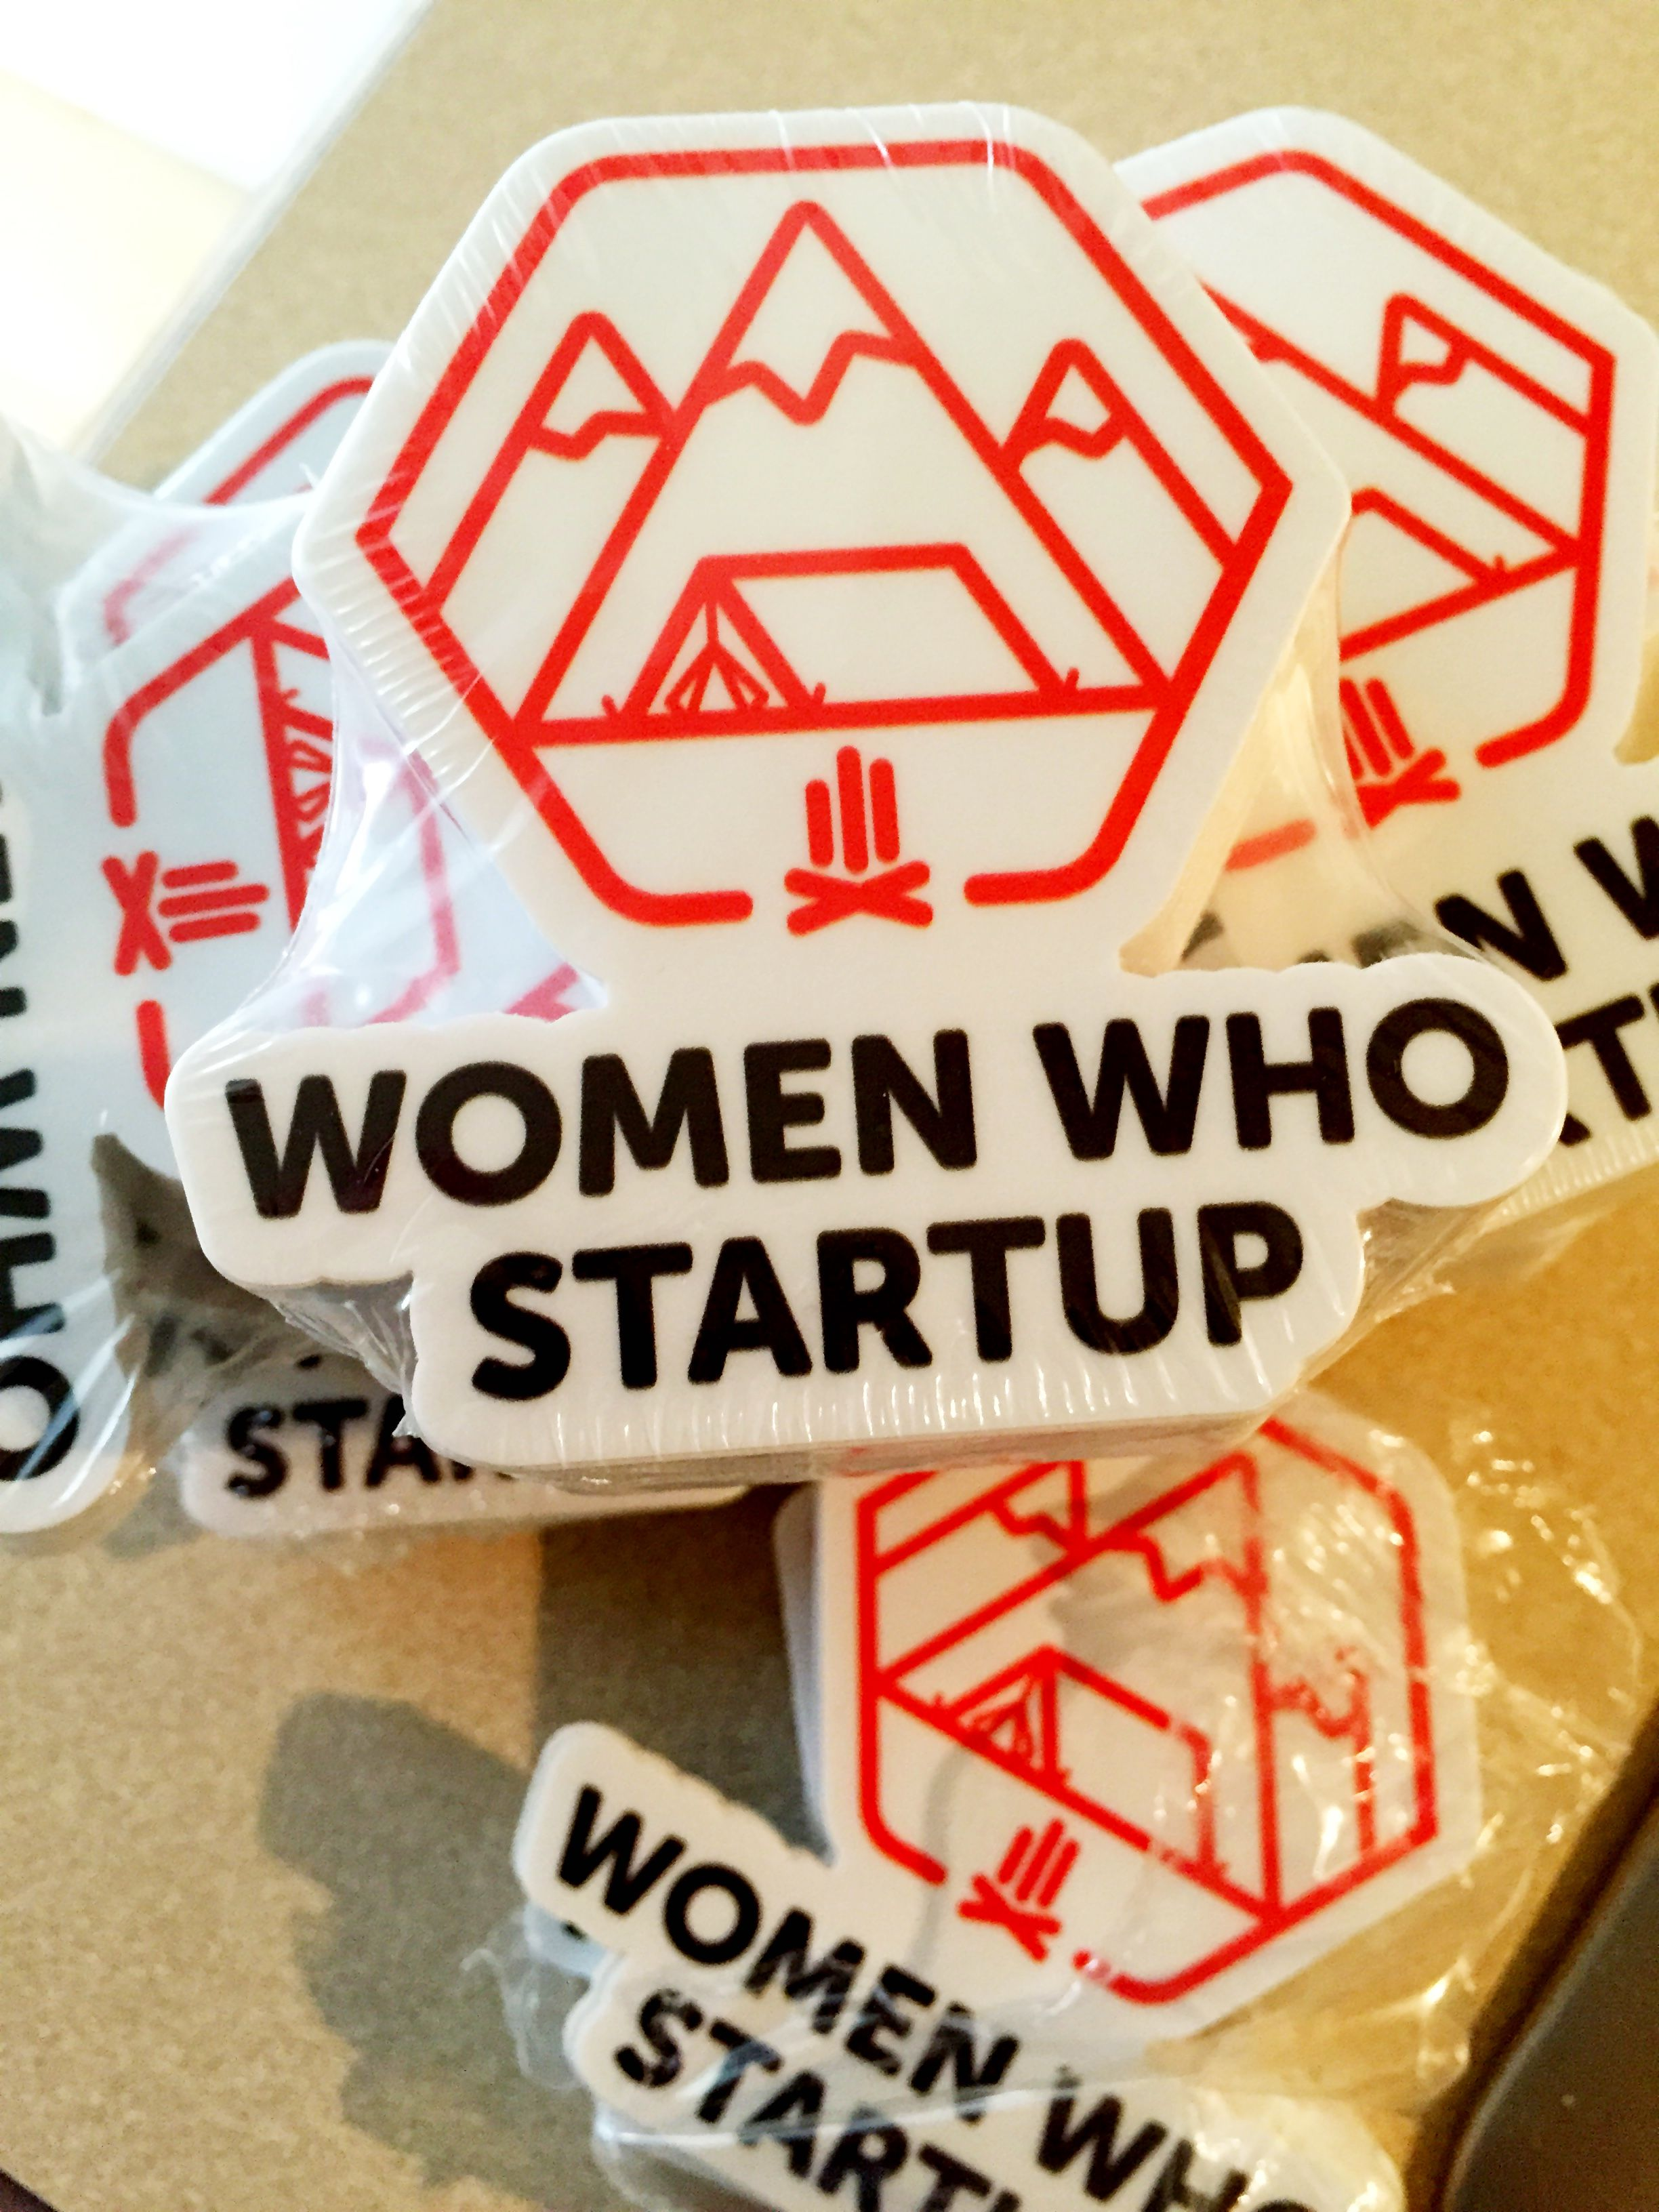 Ordered another batch of women who startup stickers from our in kind sponsor sticker mule